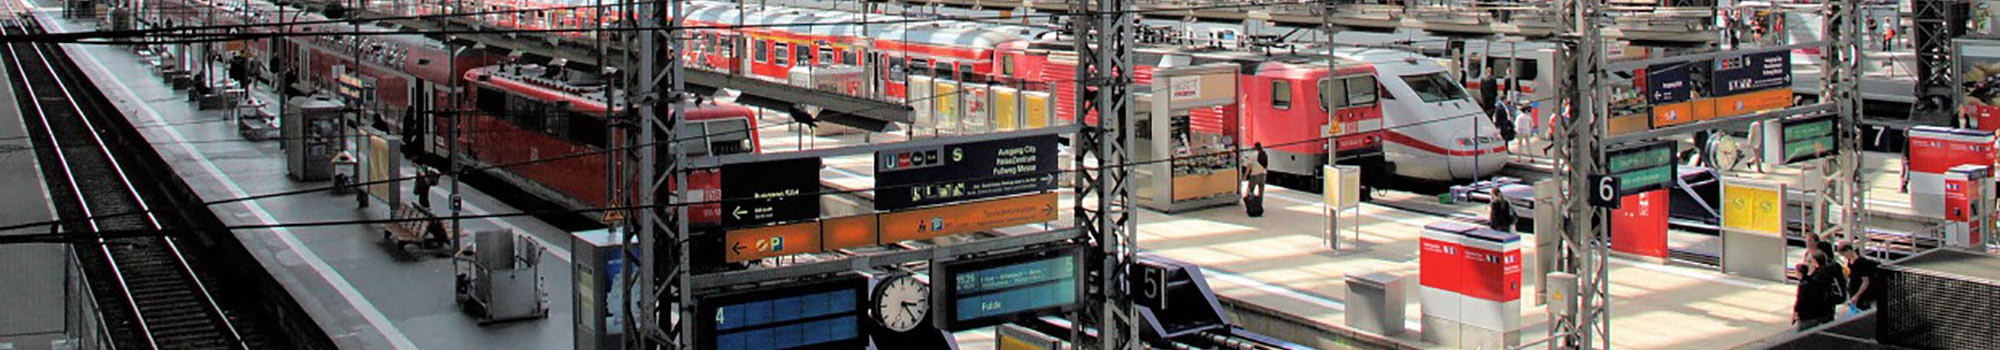 Making railway stations electrically safe